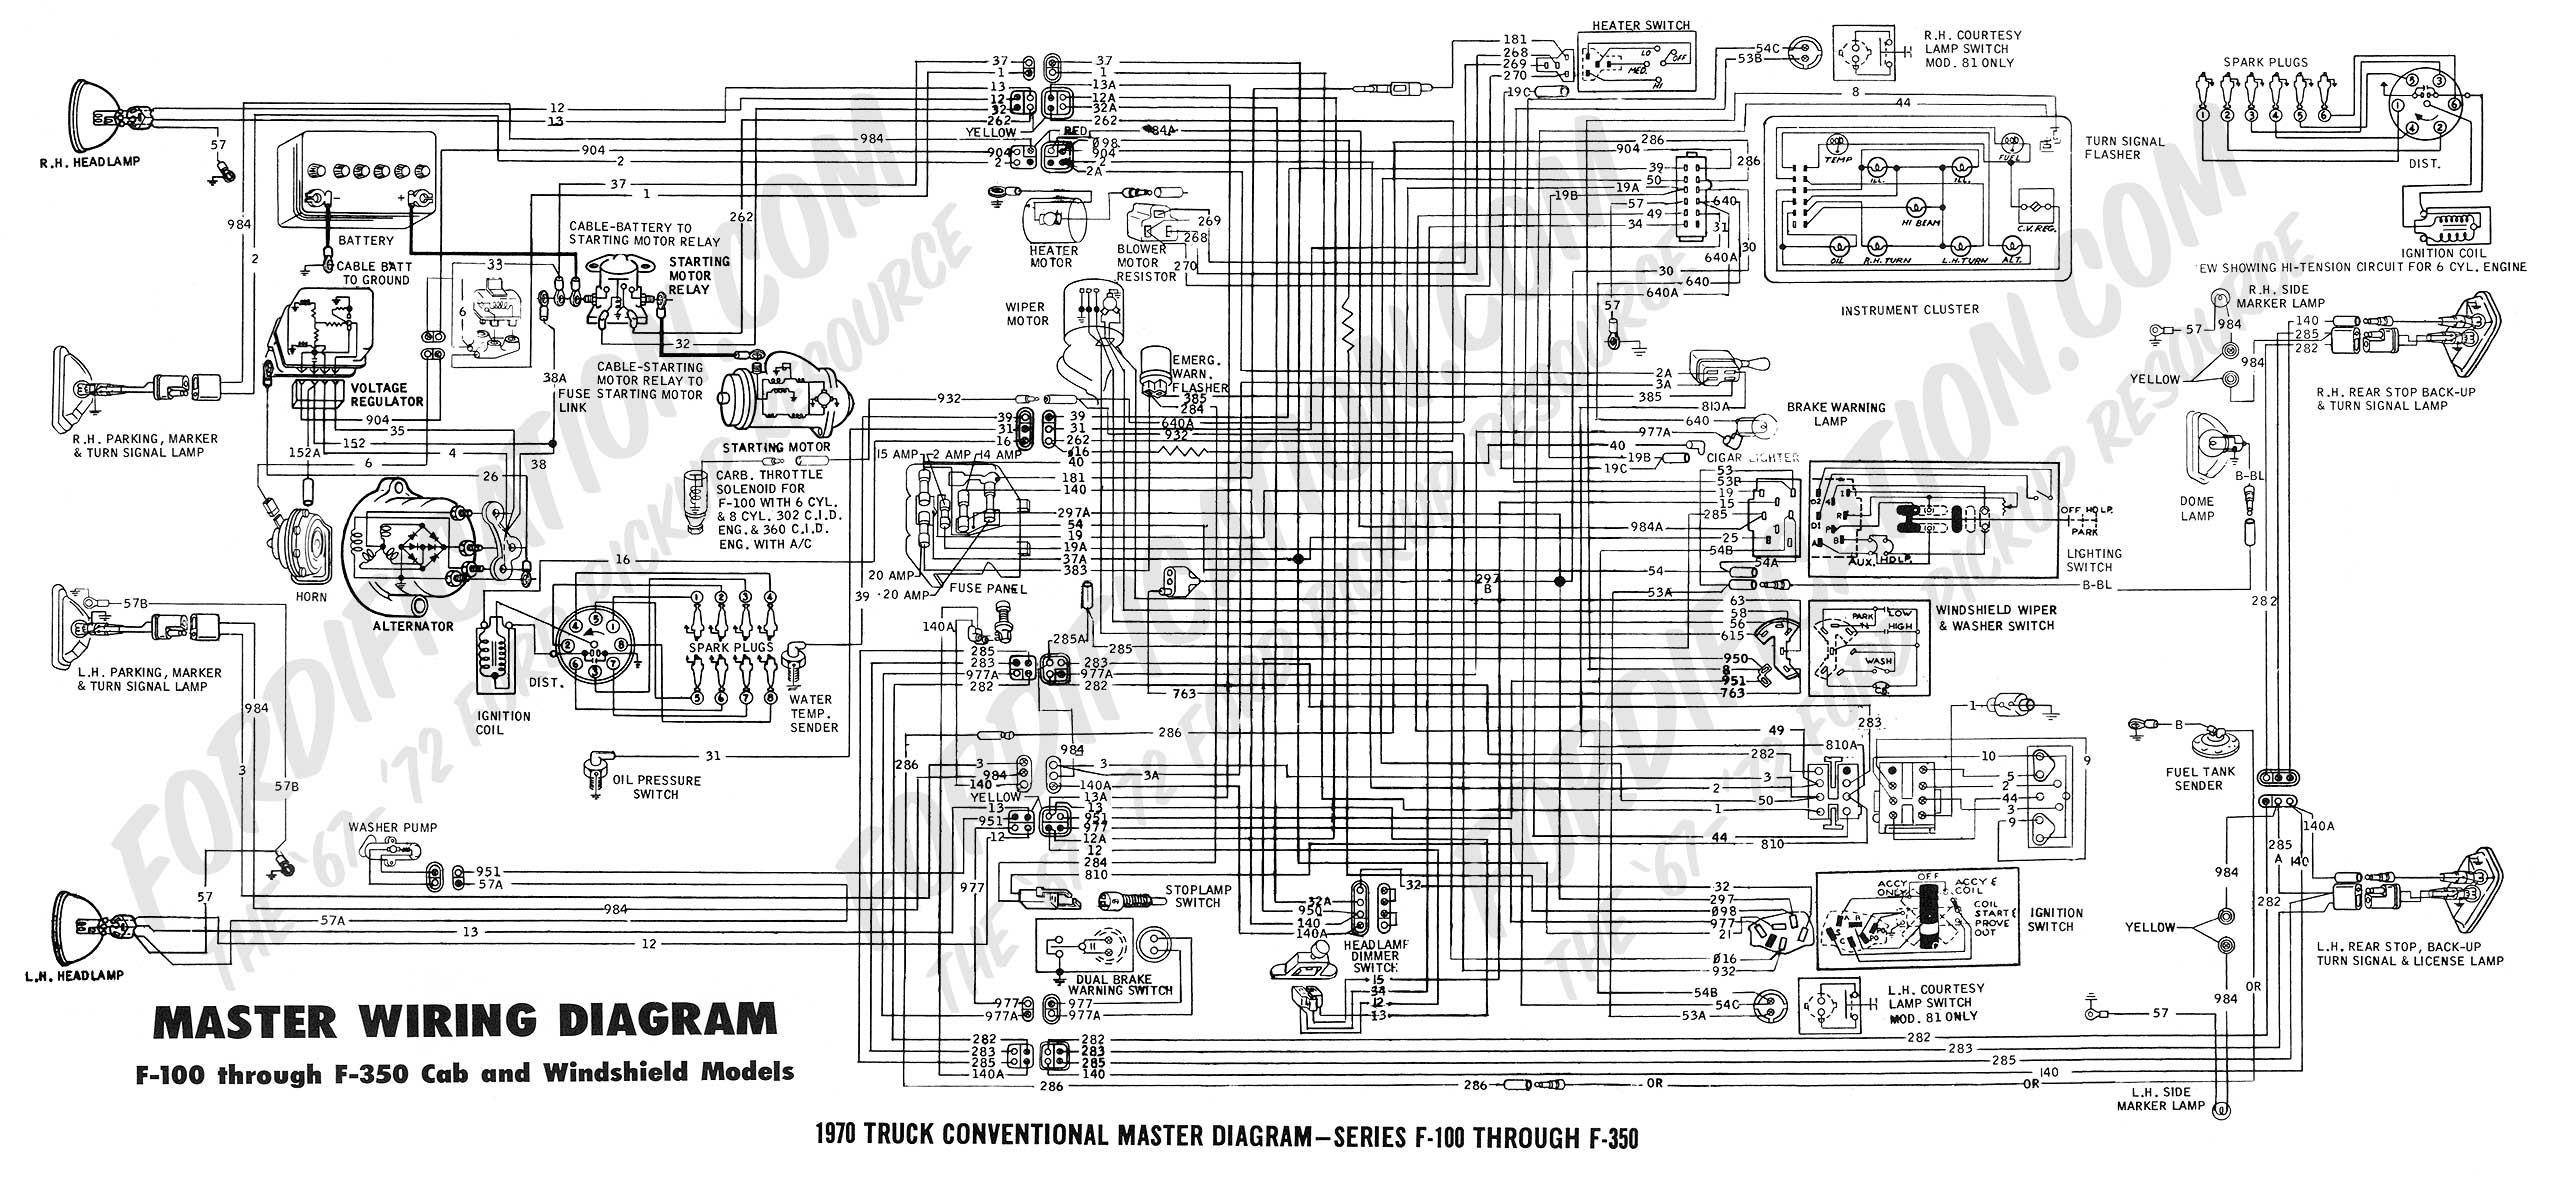 wiring diagram 70_master 1986 ford f150 wiring diagram 1986 ford bronco ii wiring diagram trailer wiring diagram pdf at n-0.co